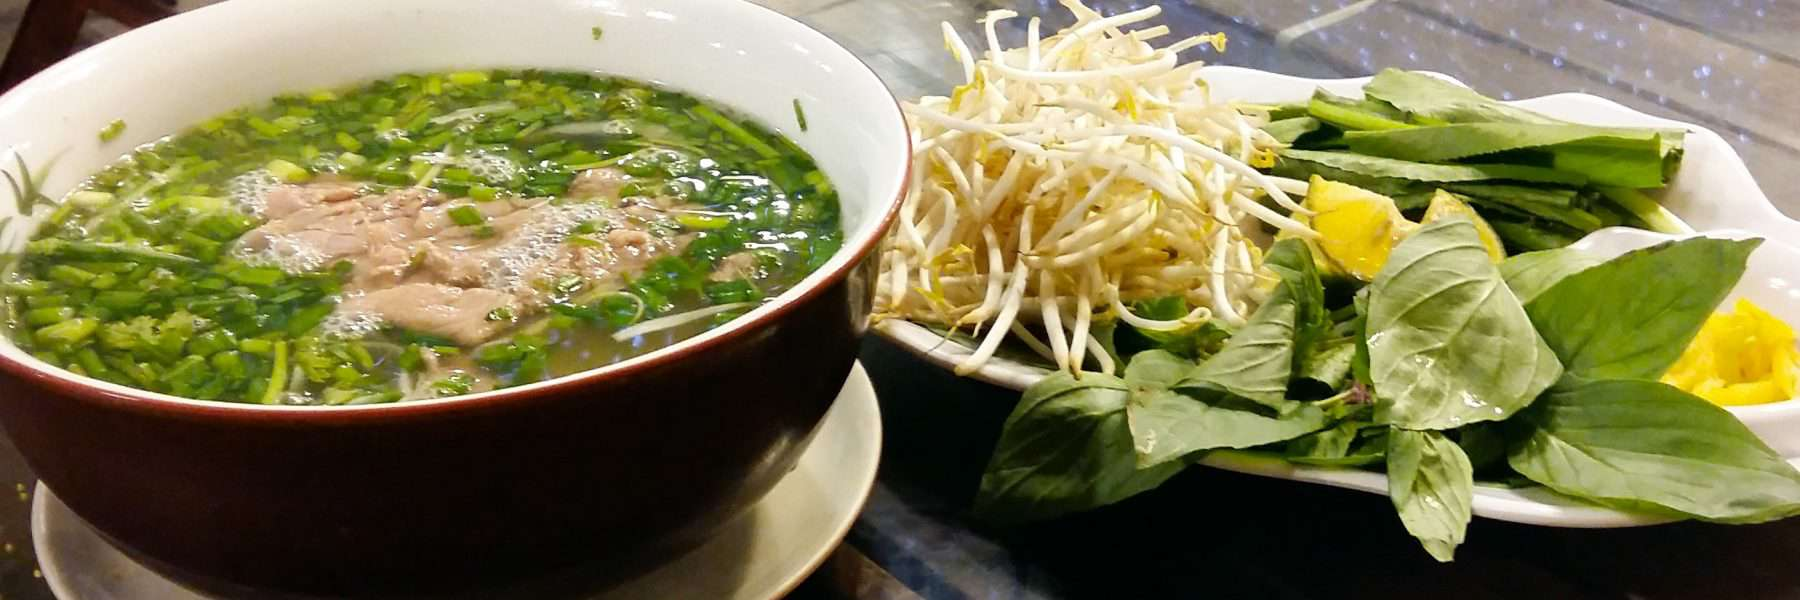 Pho Noodle Soup, national dish in Vietnam